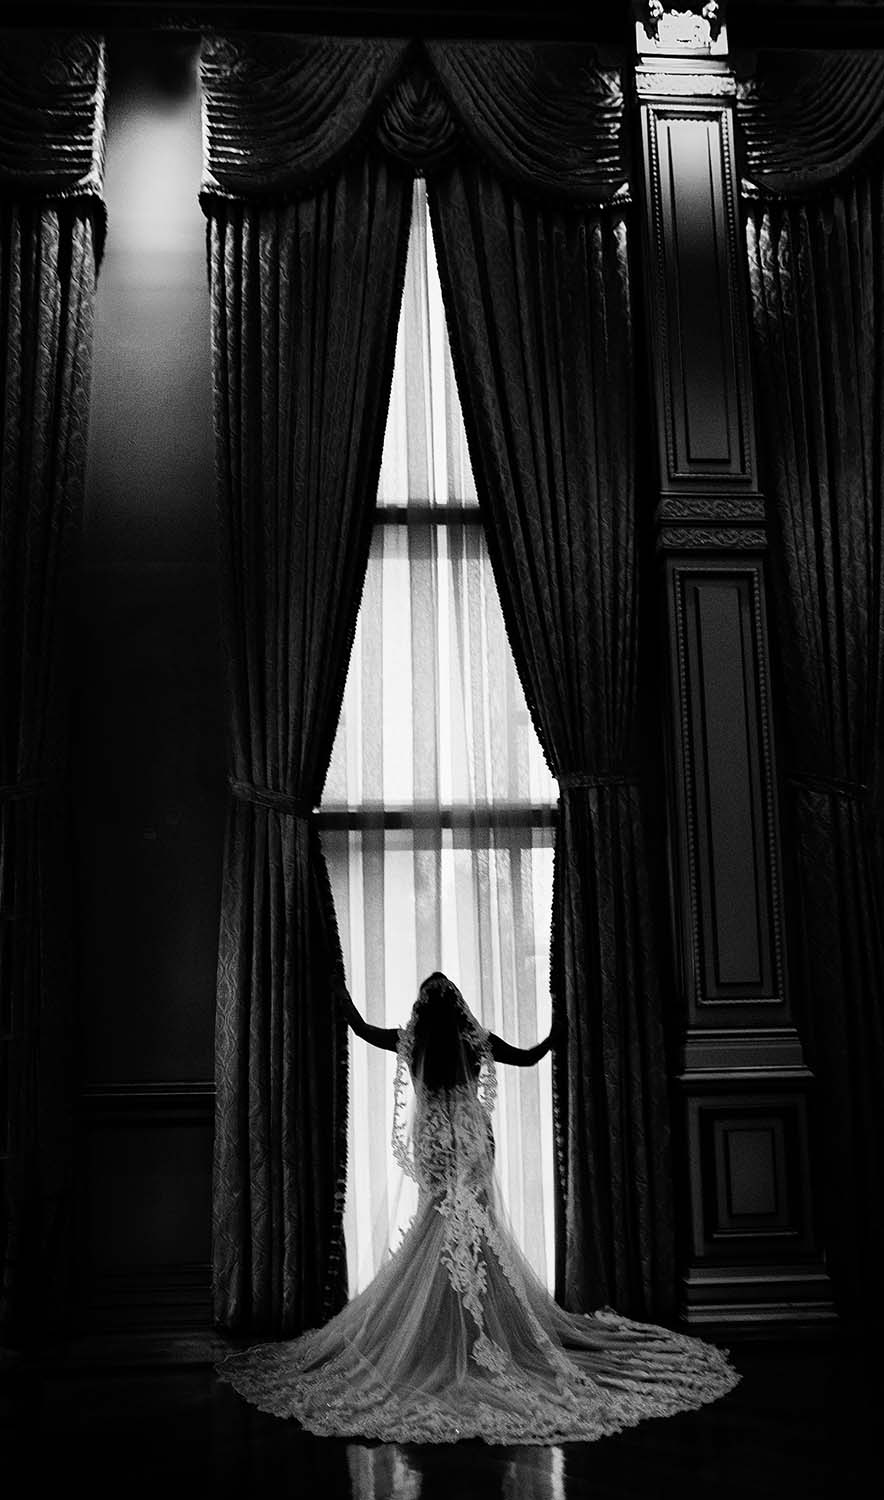 Silhouette of a Bride in front of the Large windows in the ballroom at the tides estates in north haledon nj in black and white